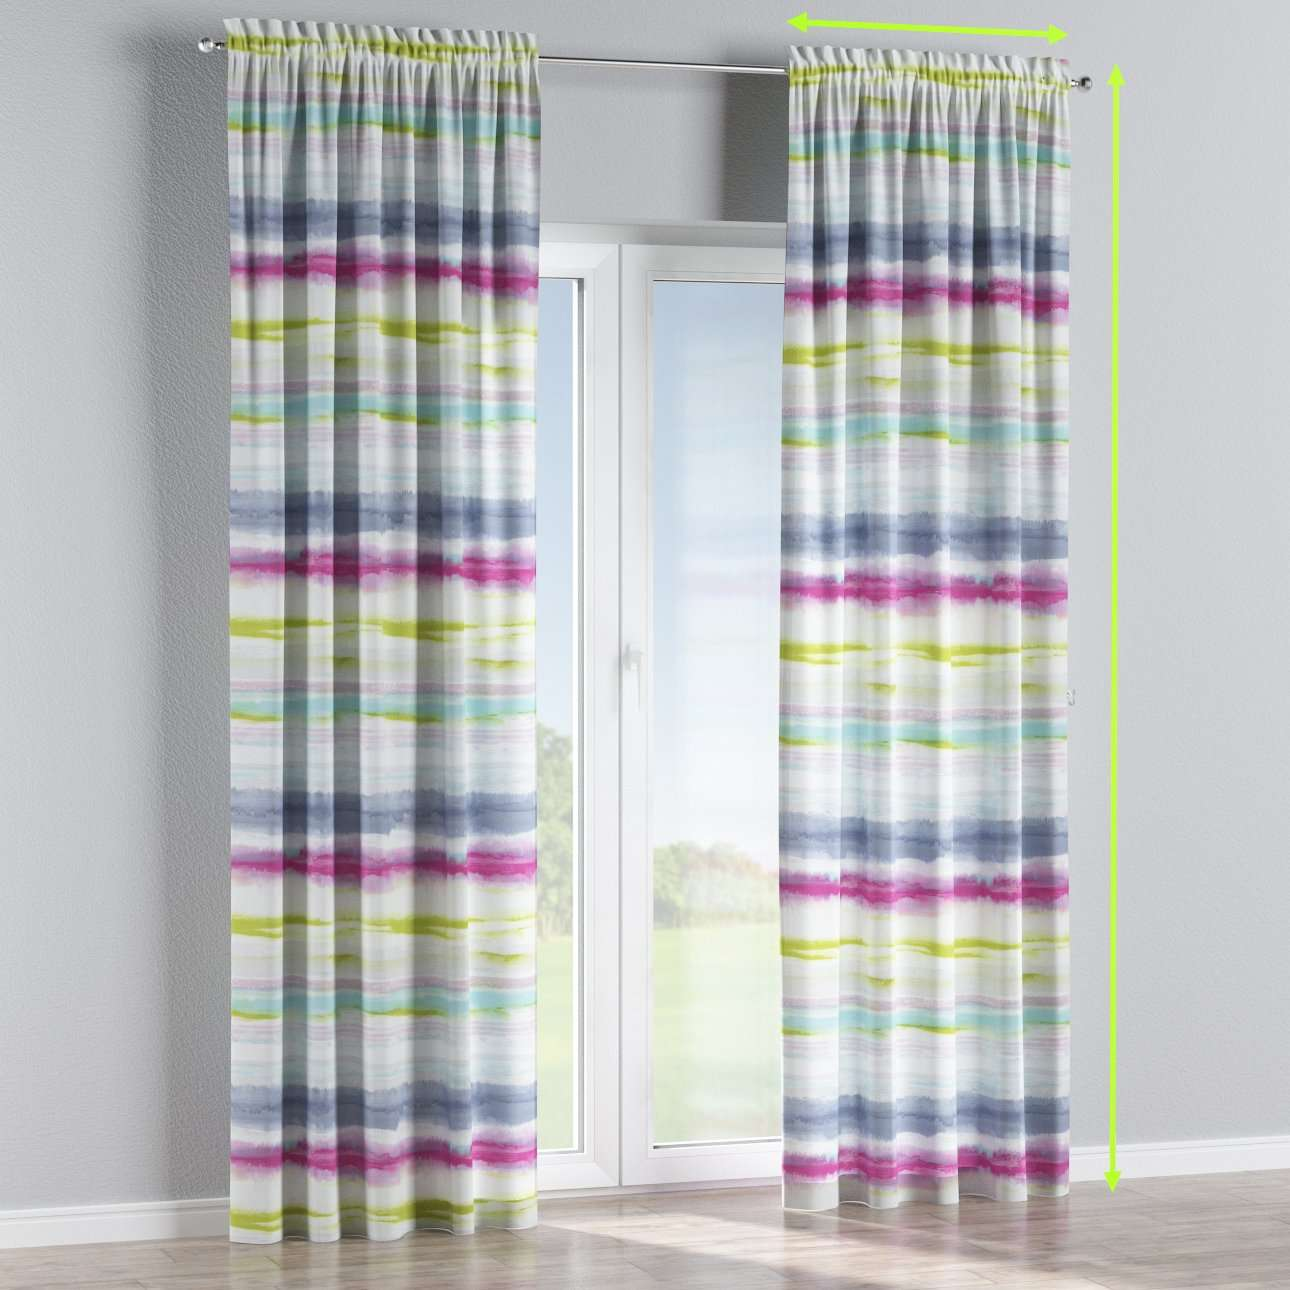 Slot and frill curtains in collection Aquarelle, fabric: 140-69